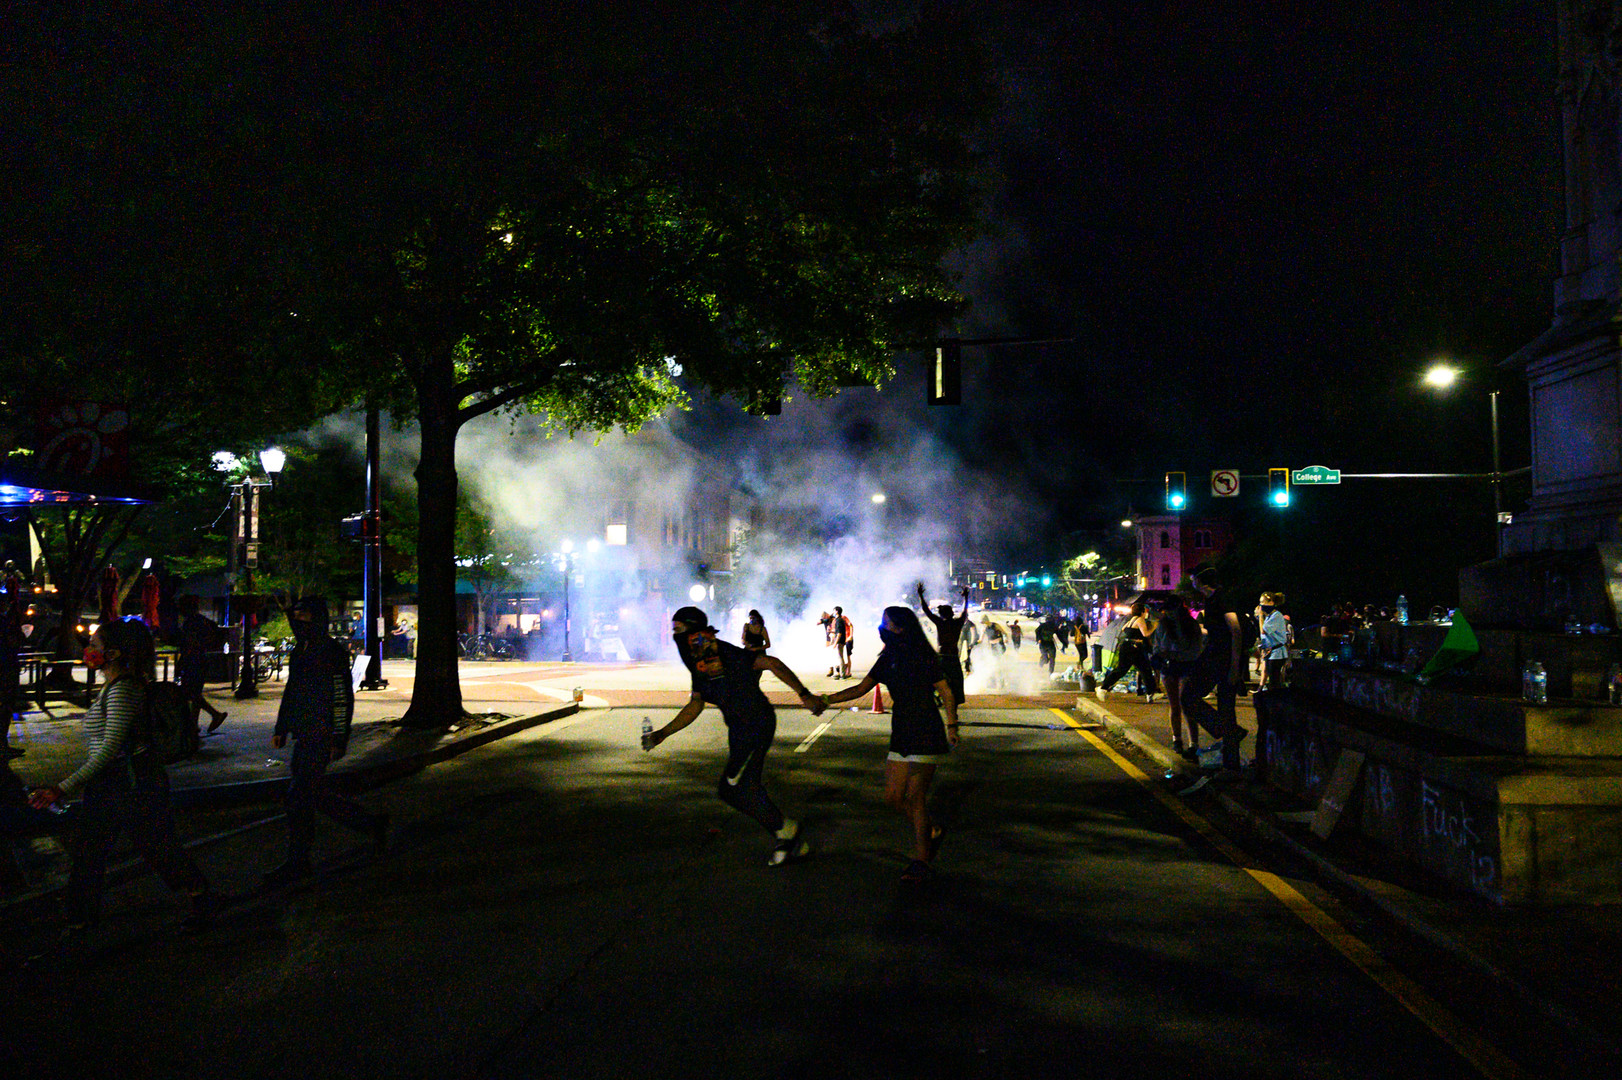 Protestors run as police fire tear gas in Athens, Georgia just after midnight on Monday, June 1, 2020. Two non-violent protests started in the afternoon, both calling for racial justice and an end to police brutality following the death of George Floyd in Minneapolis six days earlier. As the evening progressed, police forces surrounded the intersection with armored trucks, officers in riot gear and police cars.